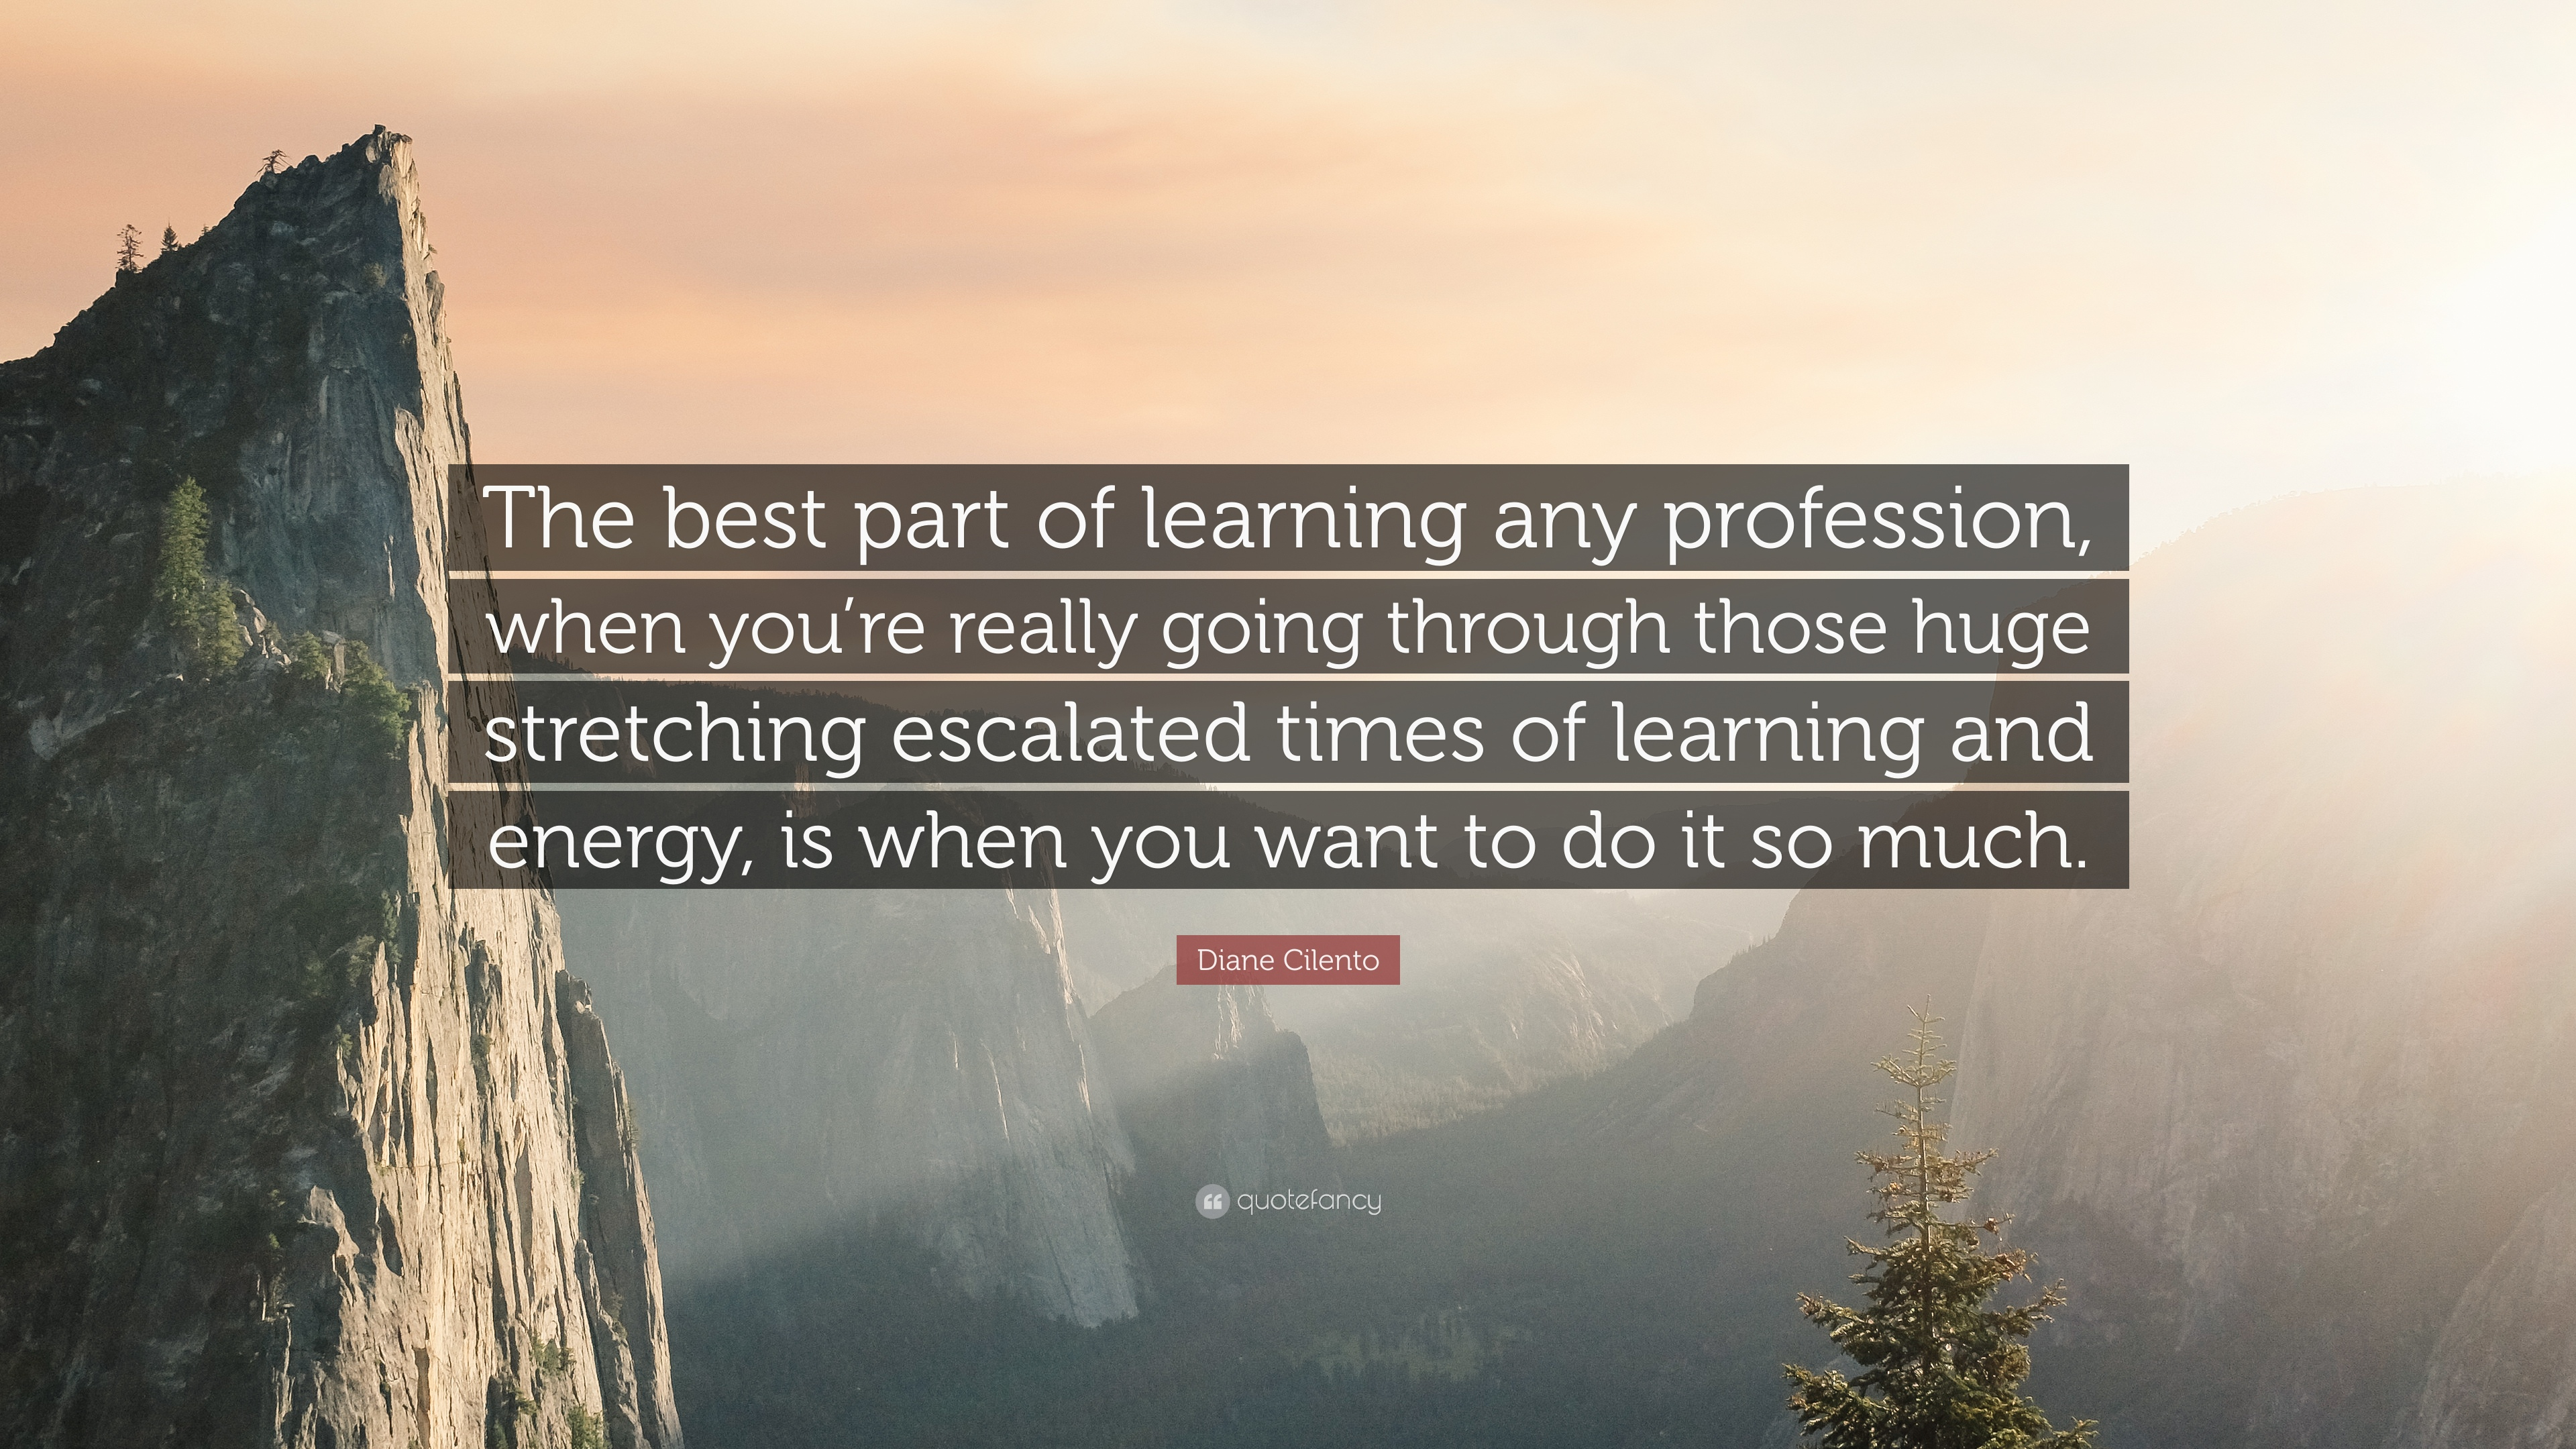 Diane Cilento Quote The Best Part Of Learning Any Profession When You Re Really Going Through Those Huge Stretching Escalated Times Of Lear 7 Wallpapers Quotefancy